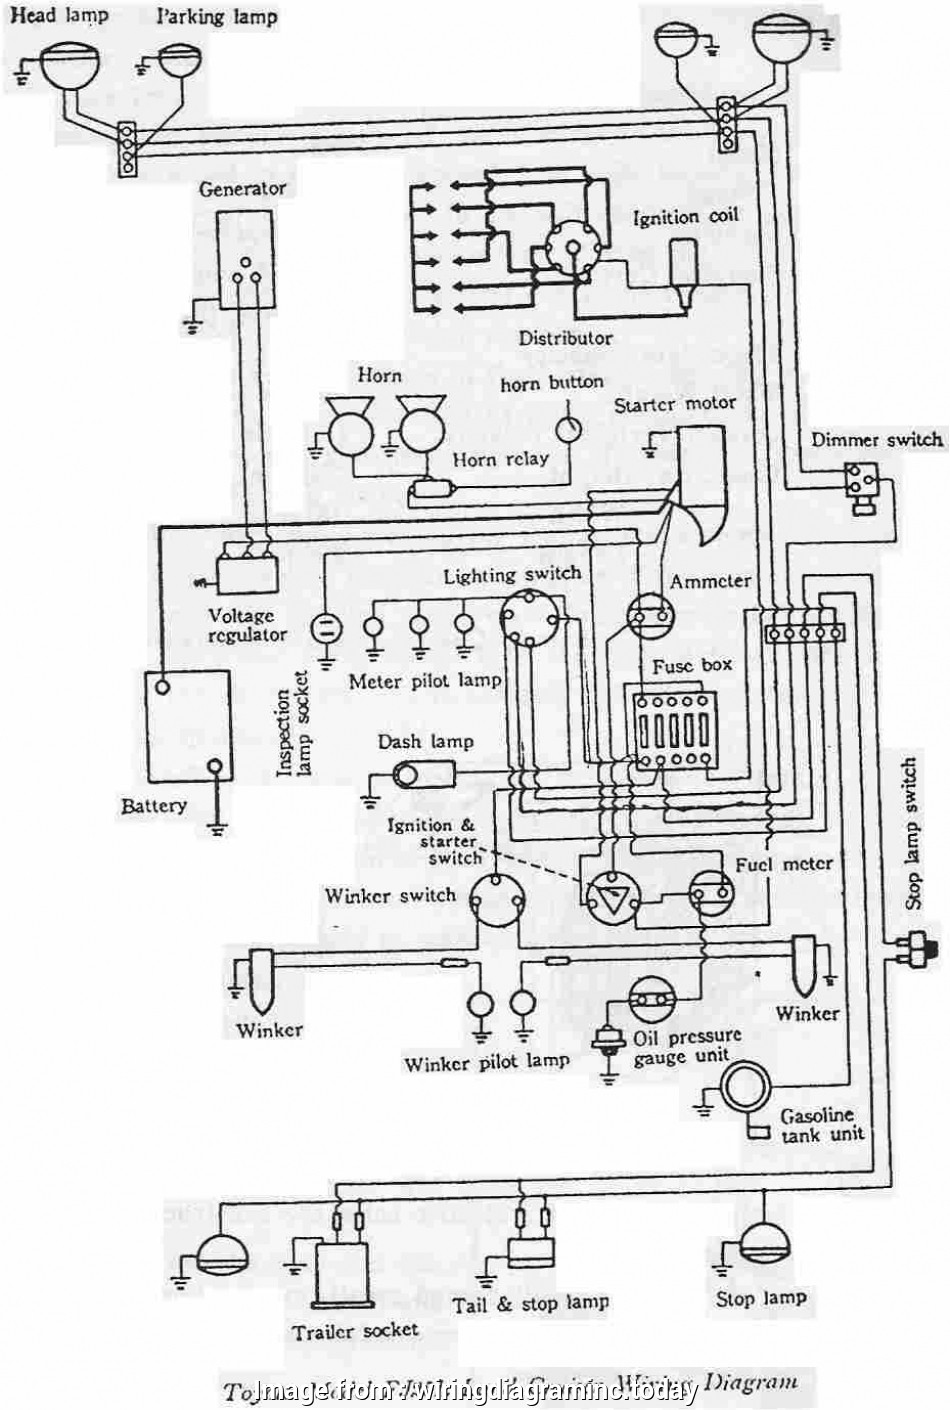 Rav4 Electrical Wiring Diagram Practical Cool Toyota